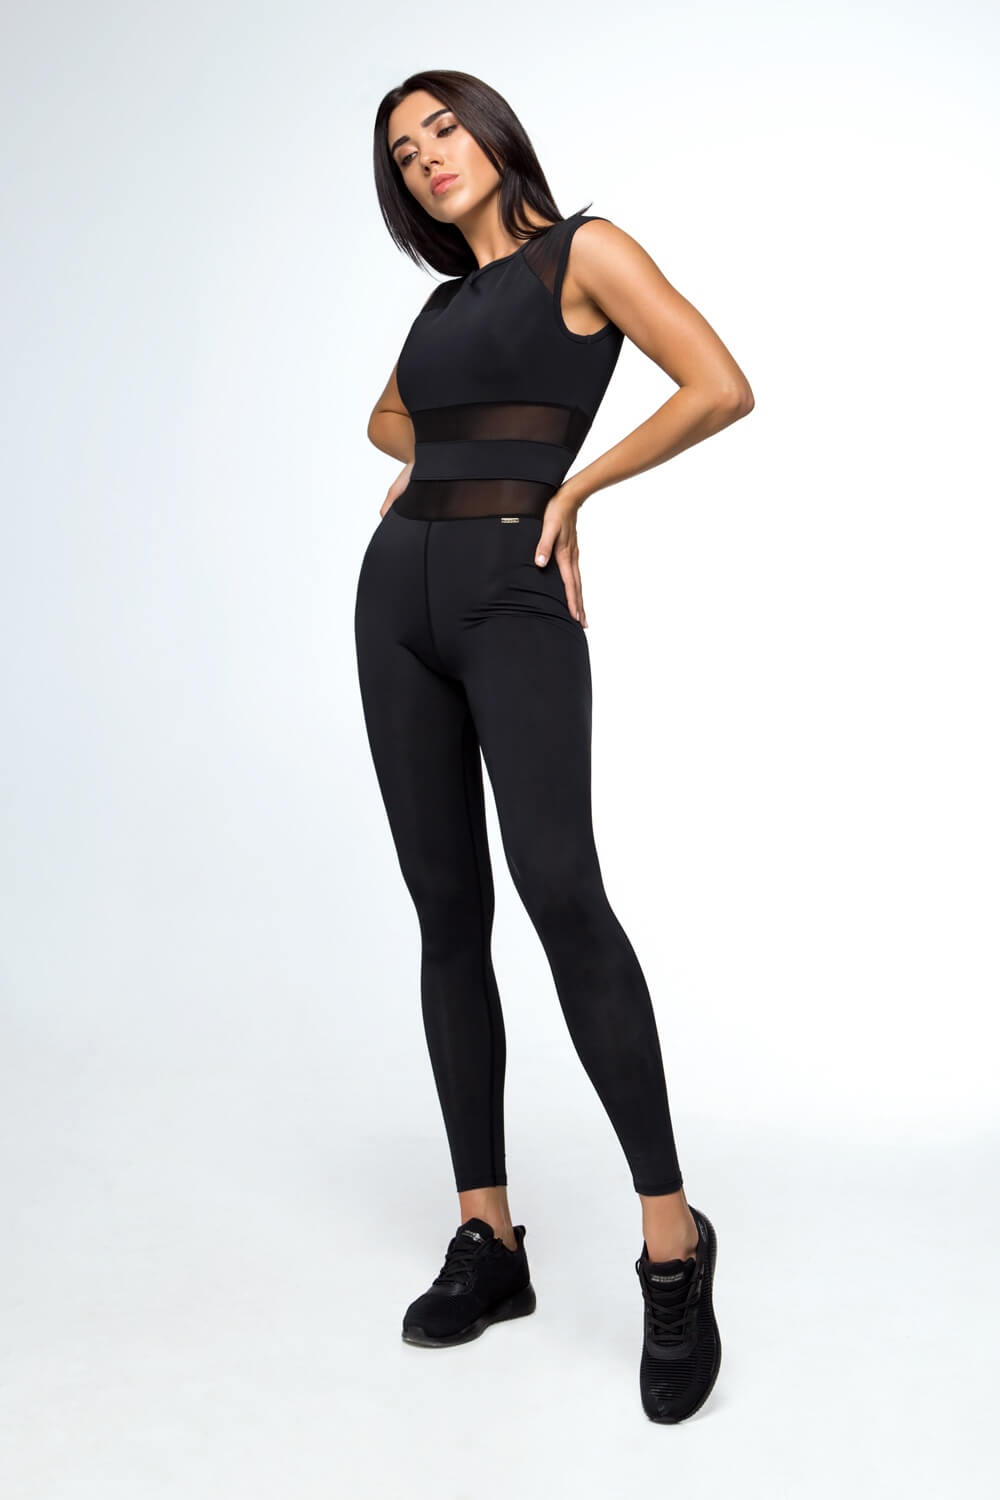 Essential Black Jumpsuit - Designed for Fitness